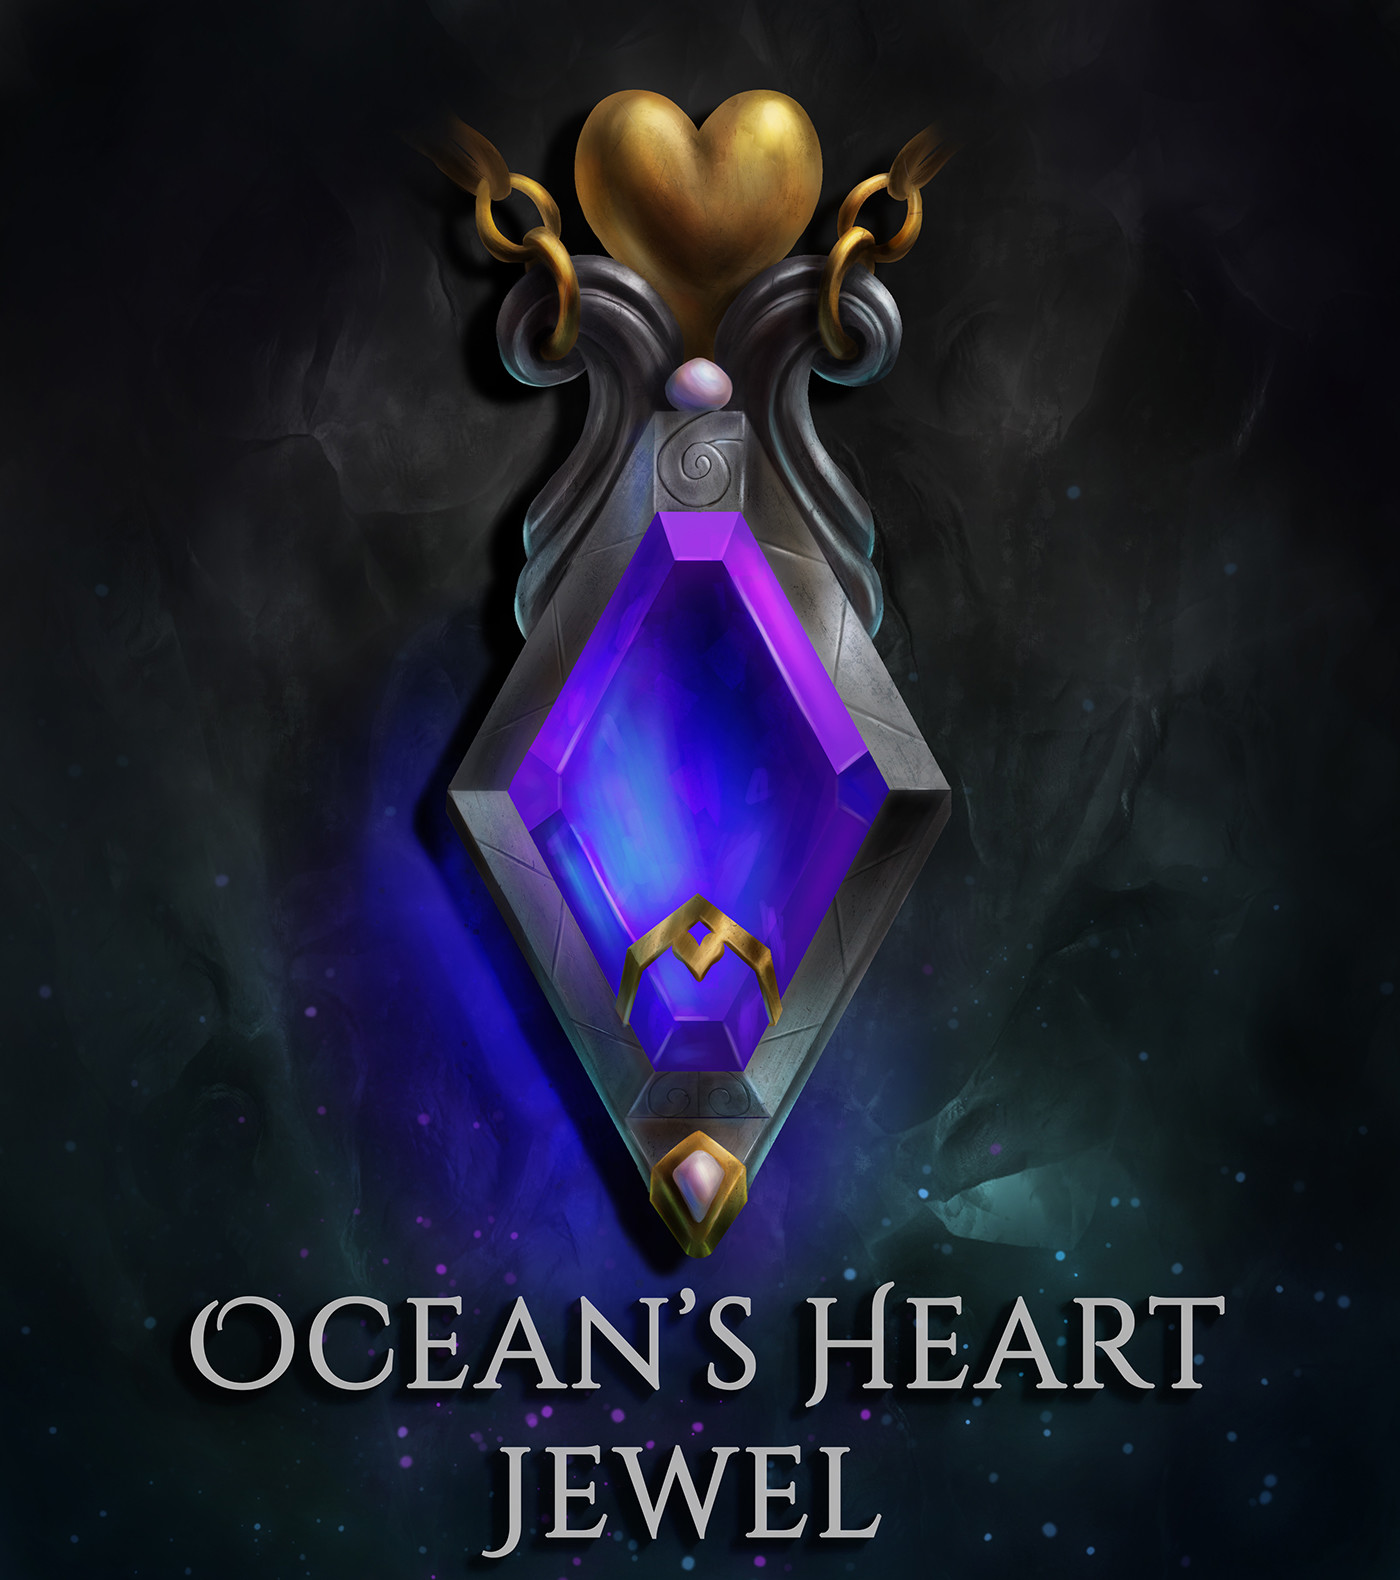 Ocean's Heart Jewel